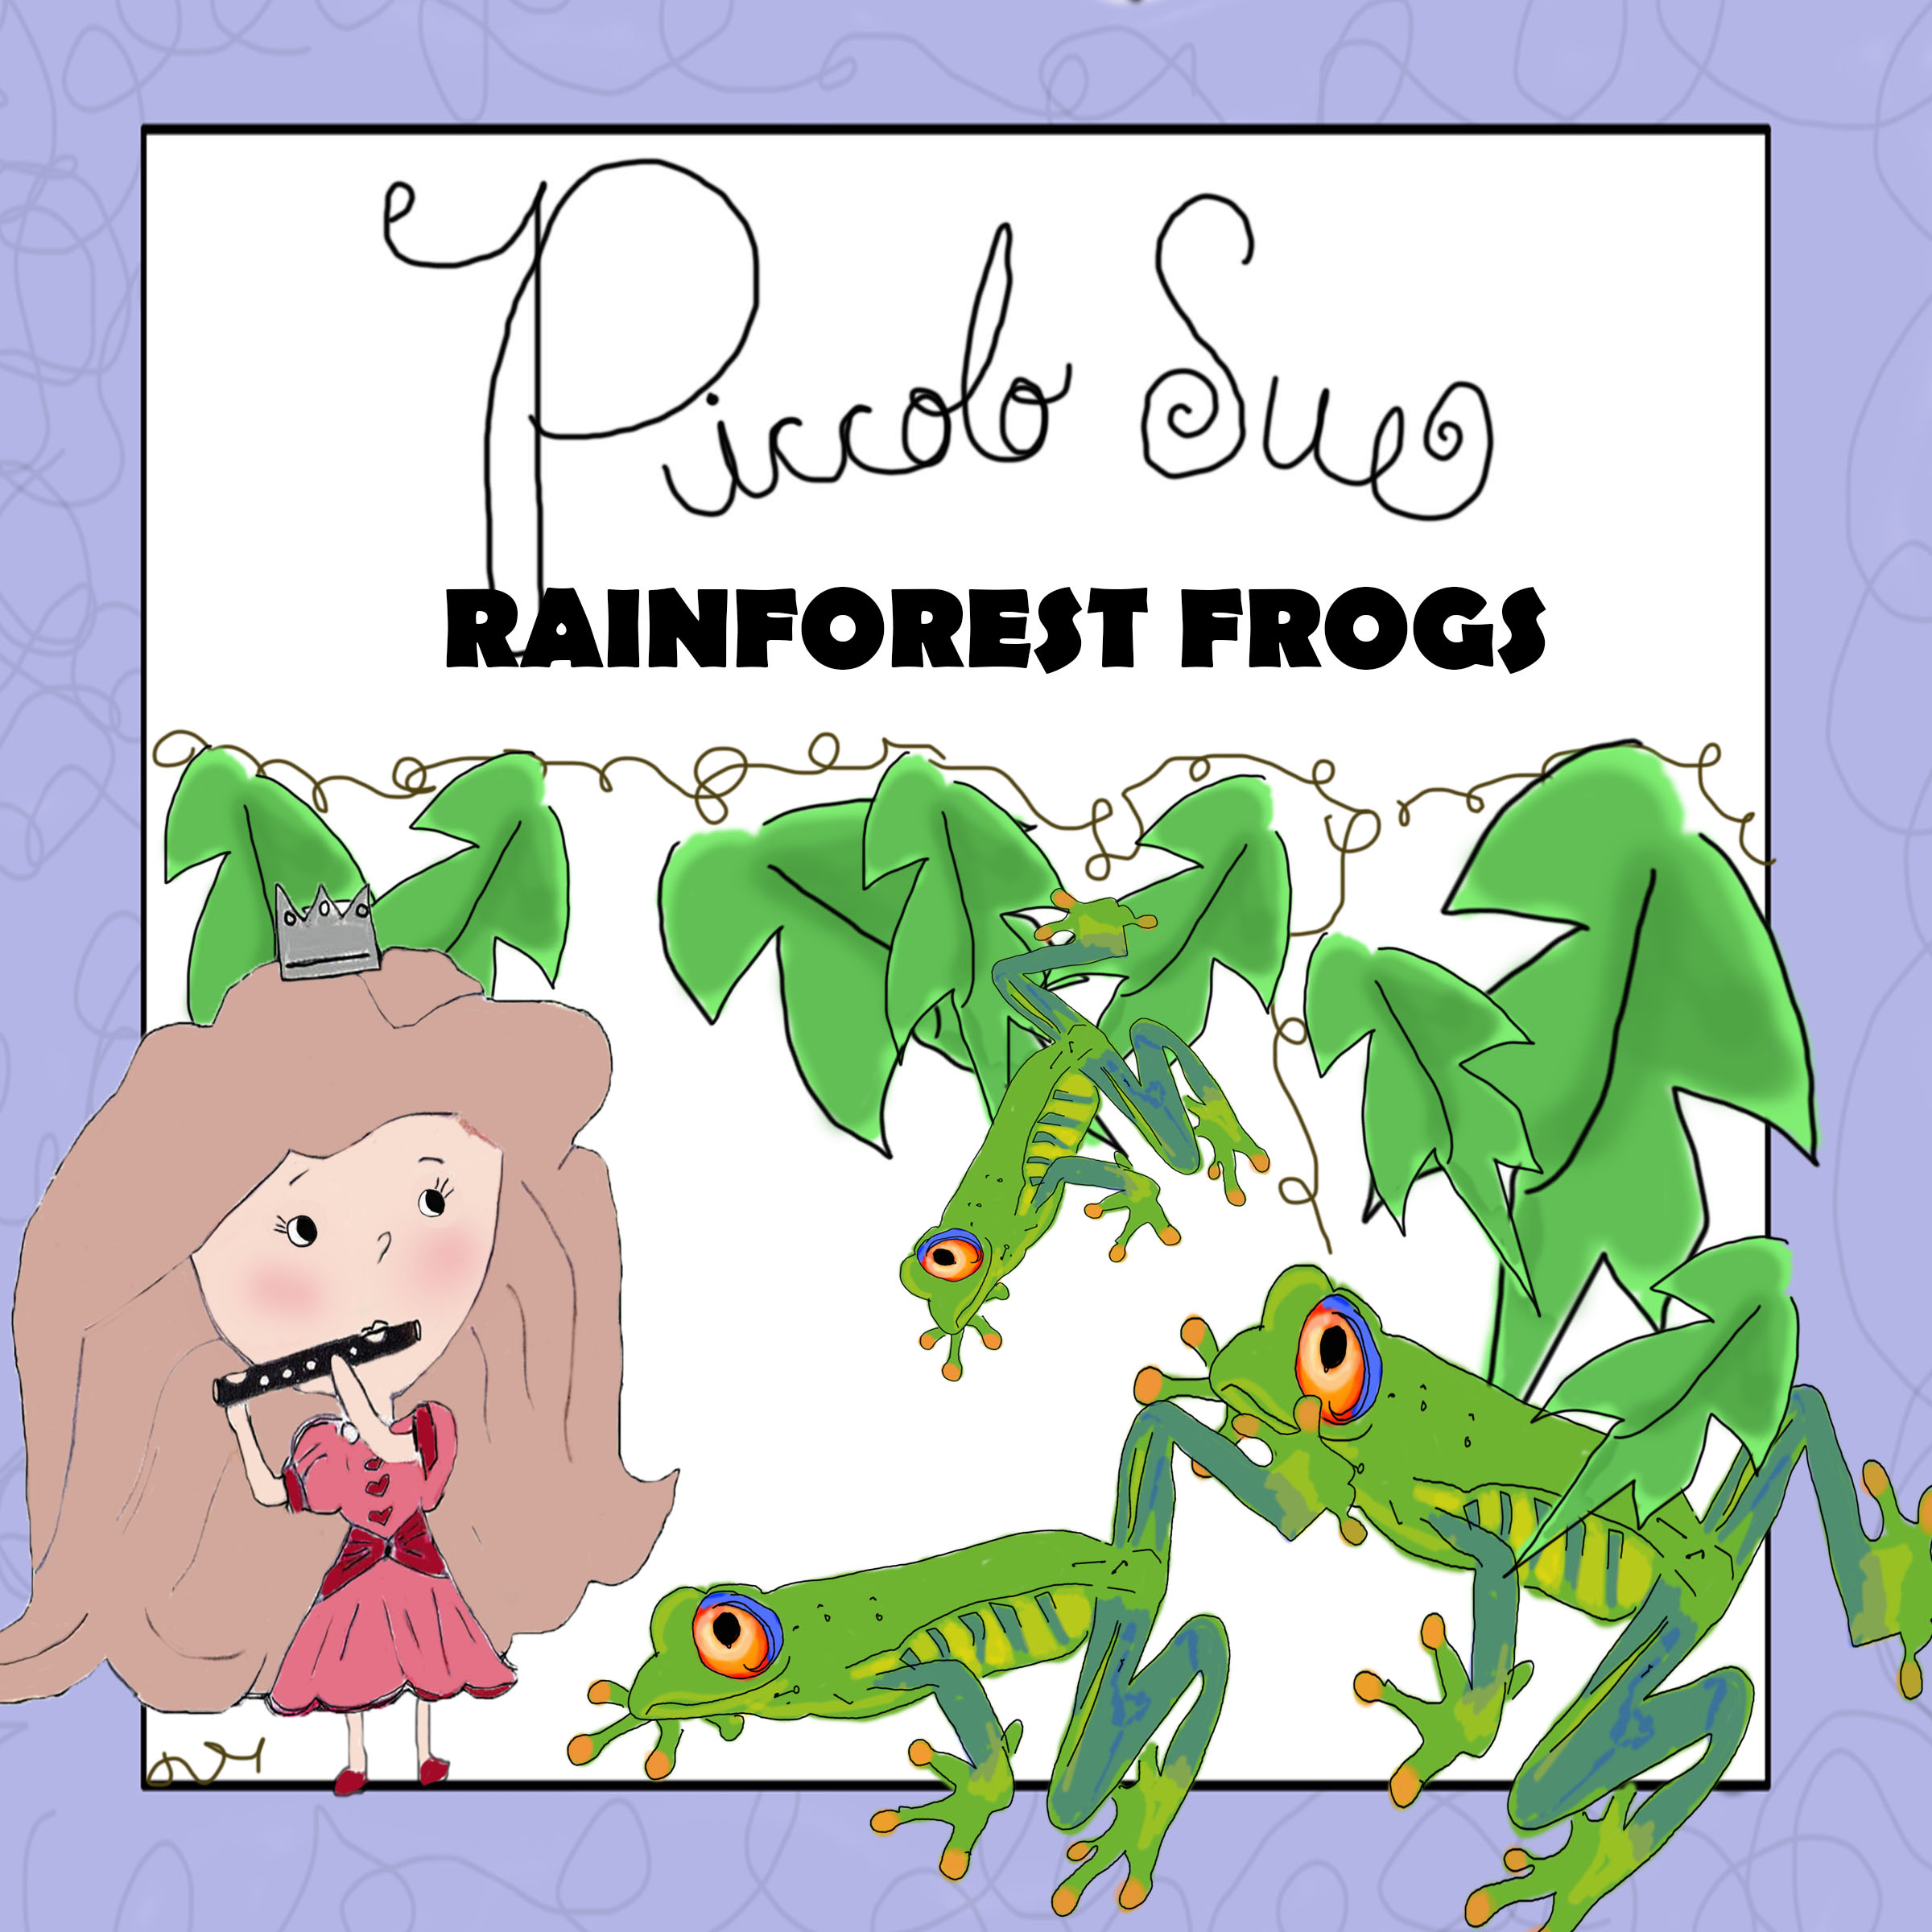 Song VIDEO: Rainforest Frogs